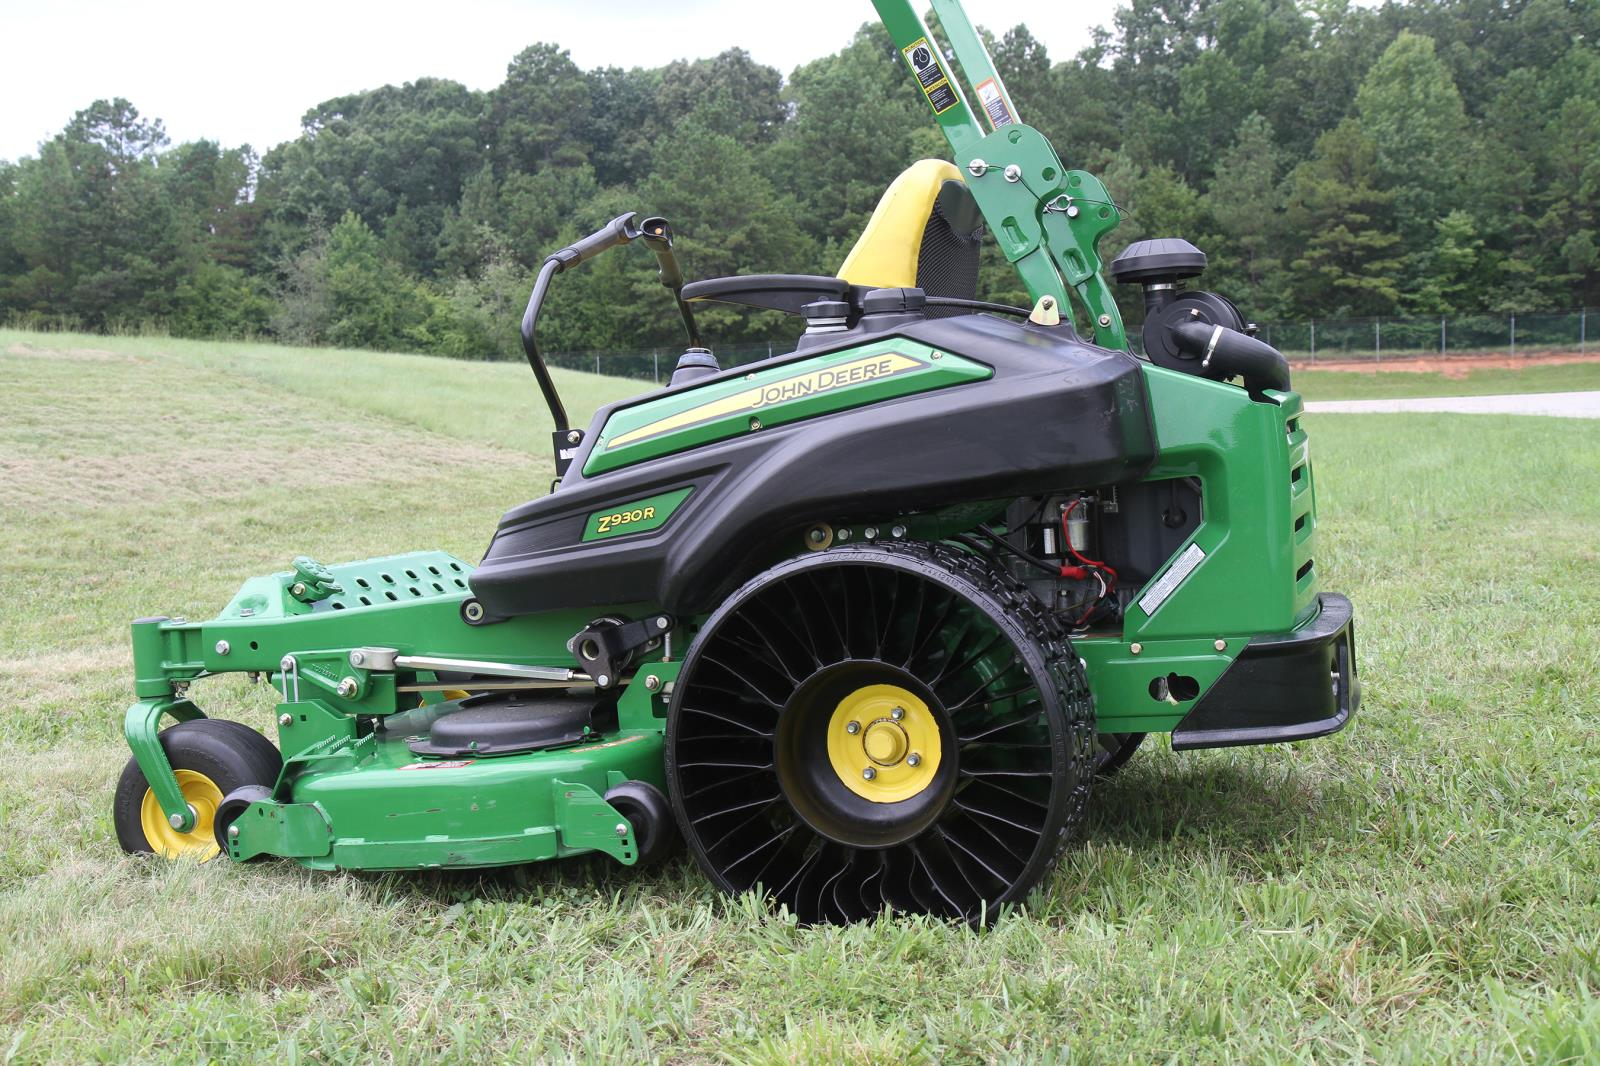 michelin to provide airless radial tire for john deere ztrak 900